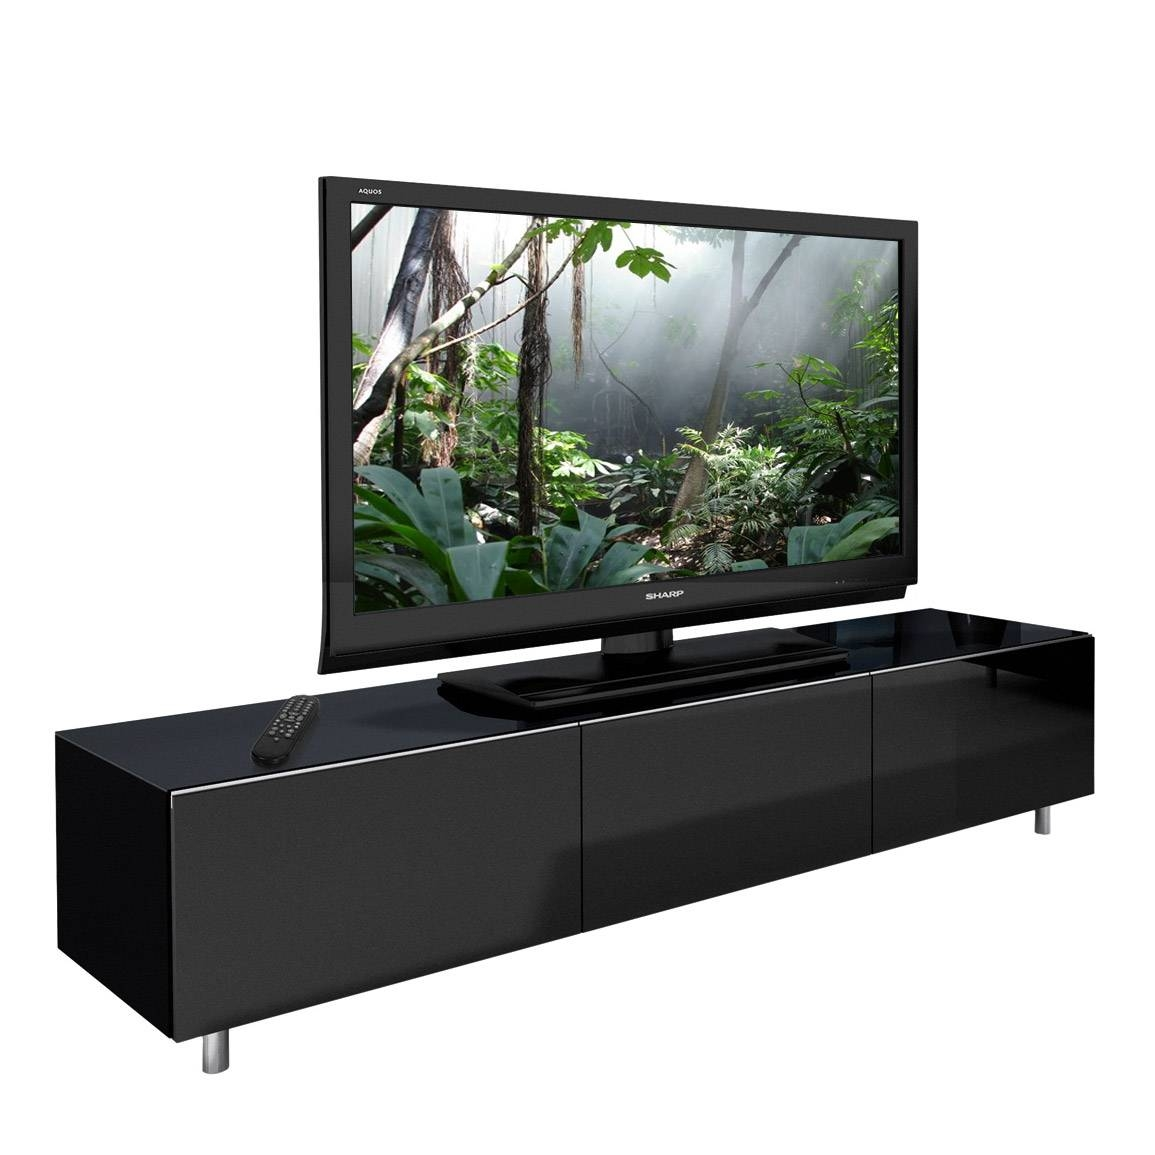 Spectral Just Racks Jrl1650S Gloss Black Tv Cabinet – Just Racks With Shiny Black Tv Stands (View 10 of 15)